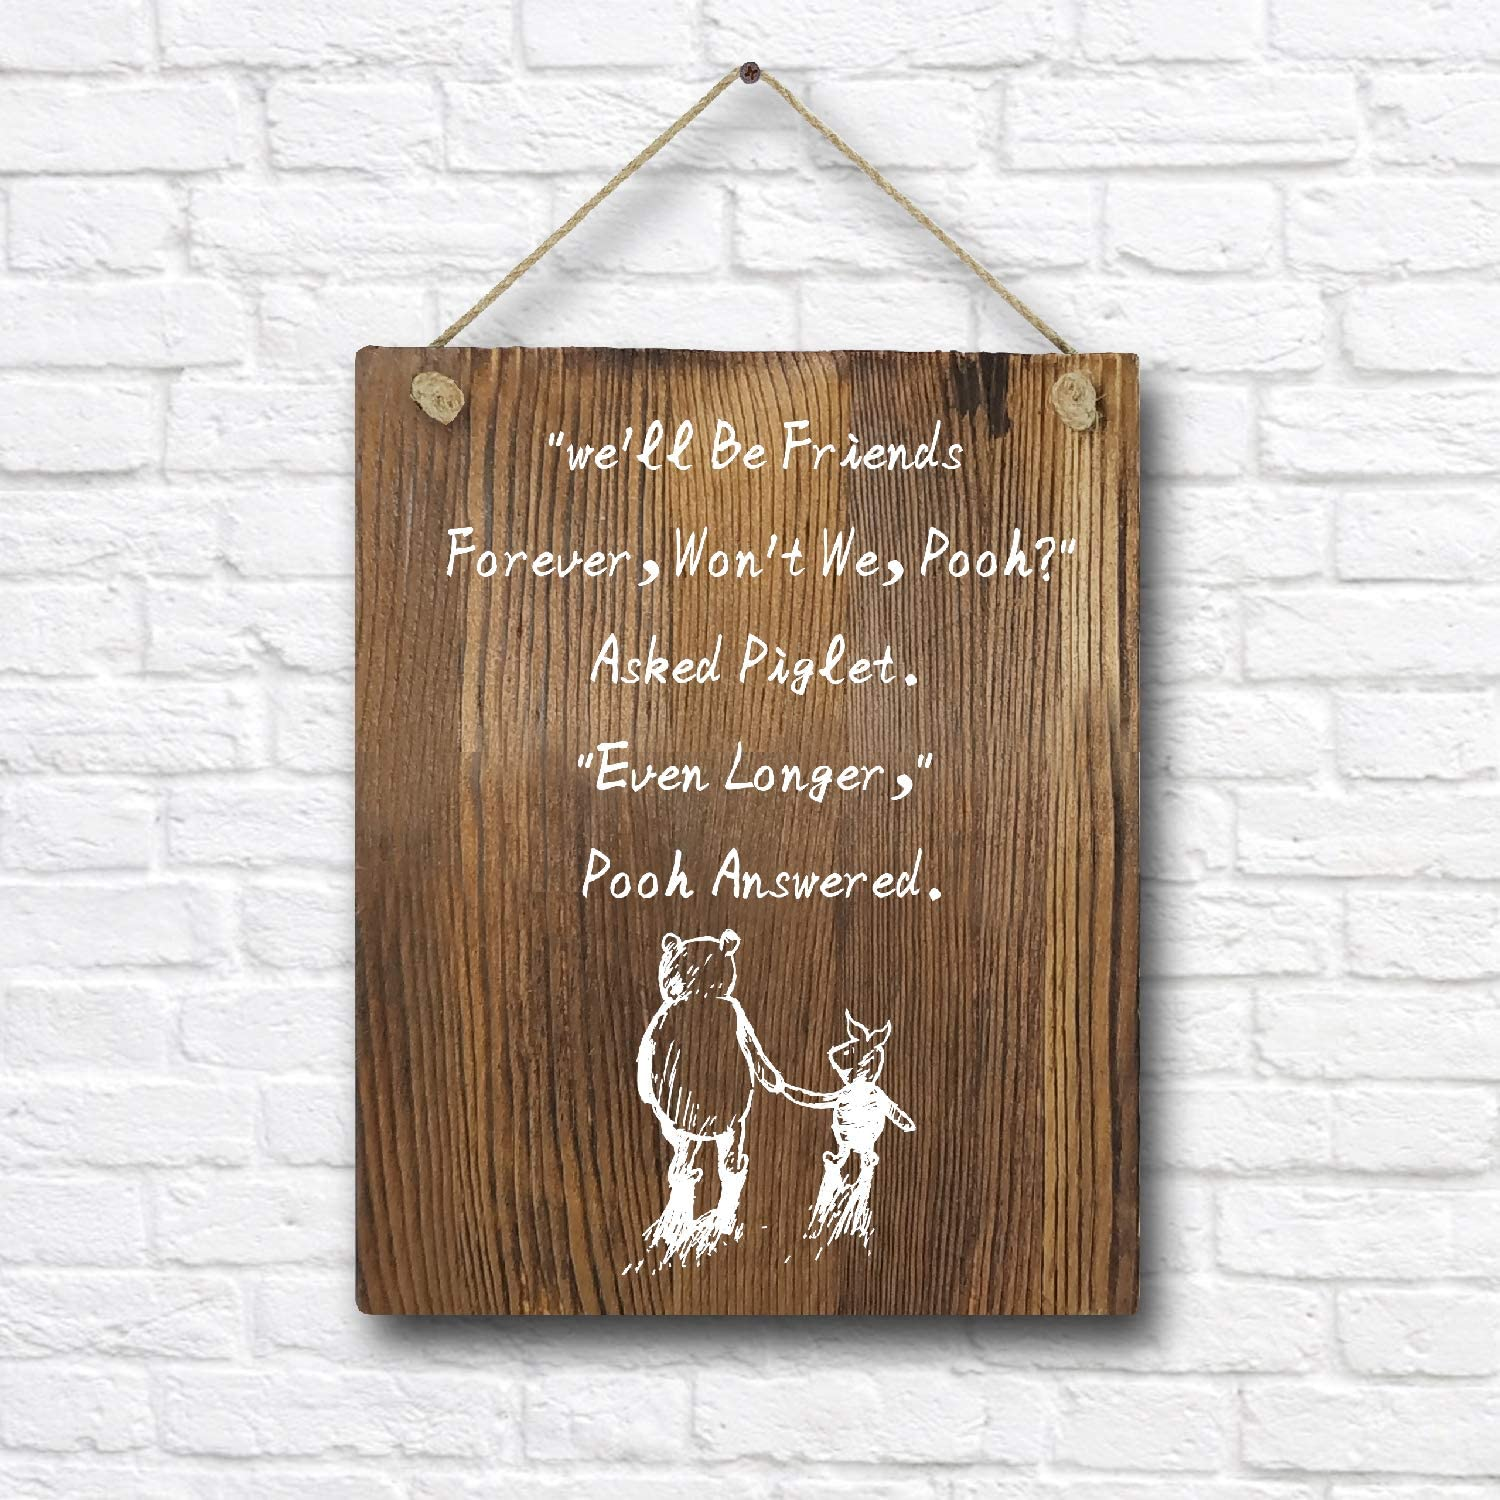 "Winnie The Pooh Quotes and Saying Rustic Wood Wall Art Decor- 8""x10"" Wooden Hanging Wall Art for Classroom Office Child/Boy/Girl/Nursery Room Decor"